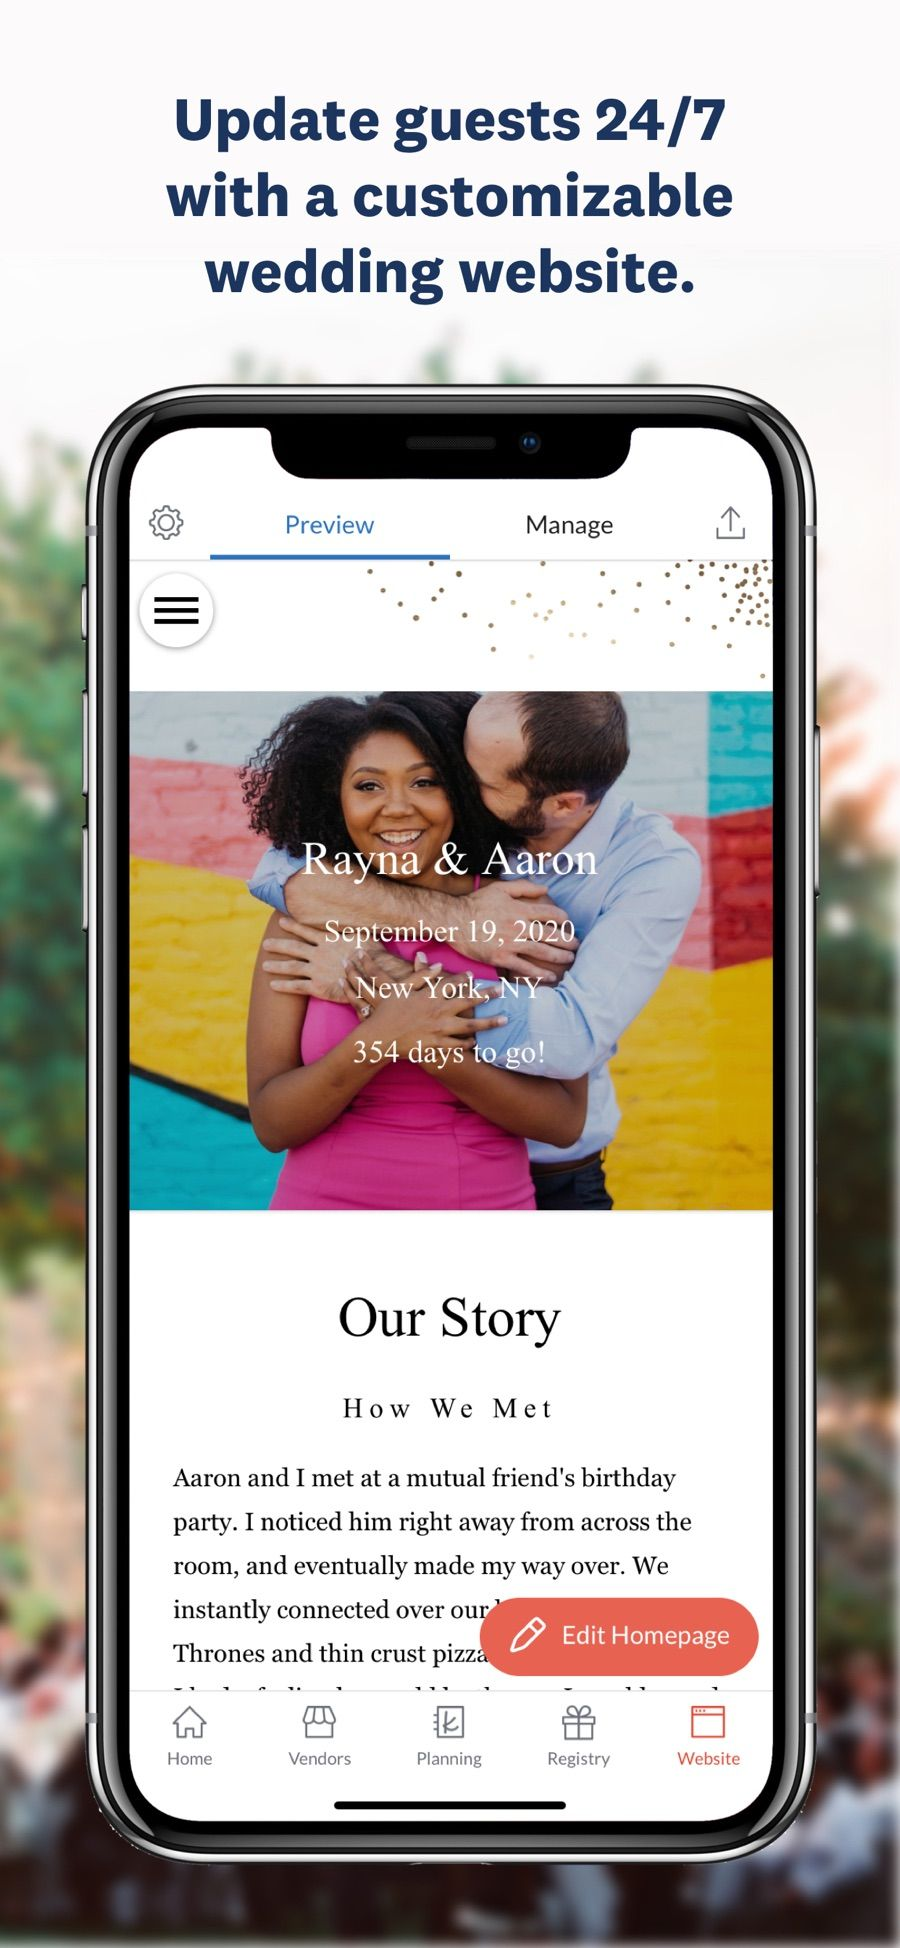 Wedding Planner by The Knot on the App Store Wedding